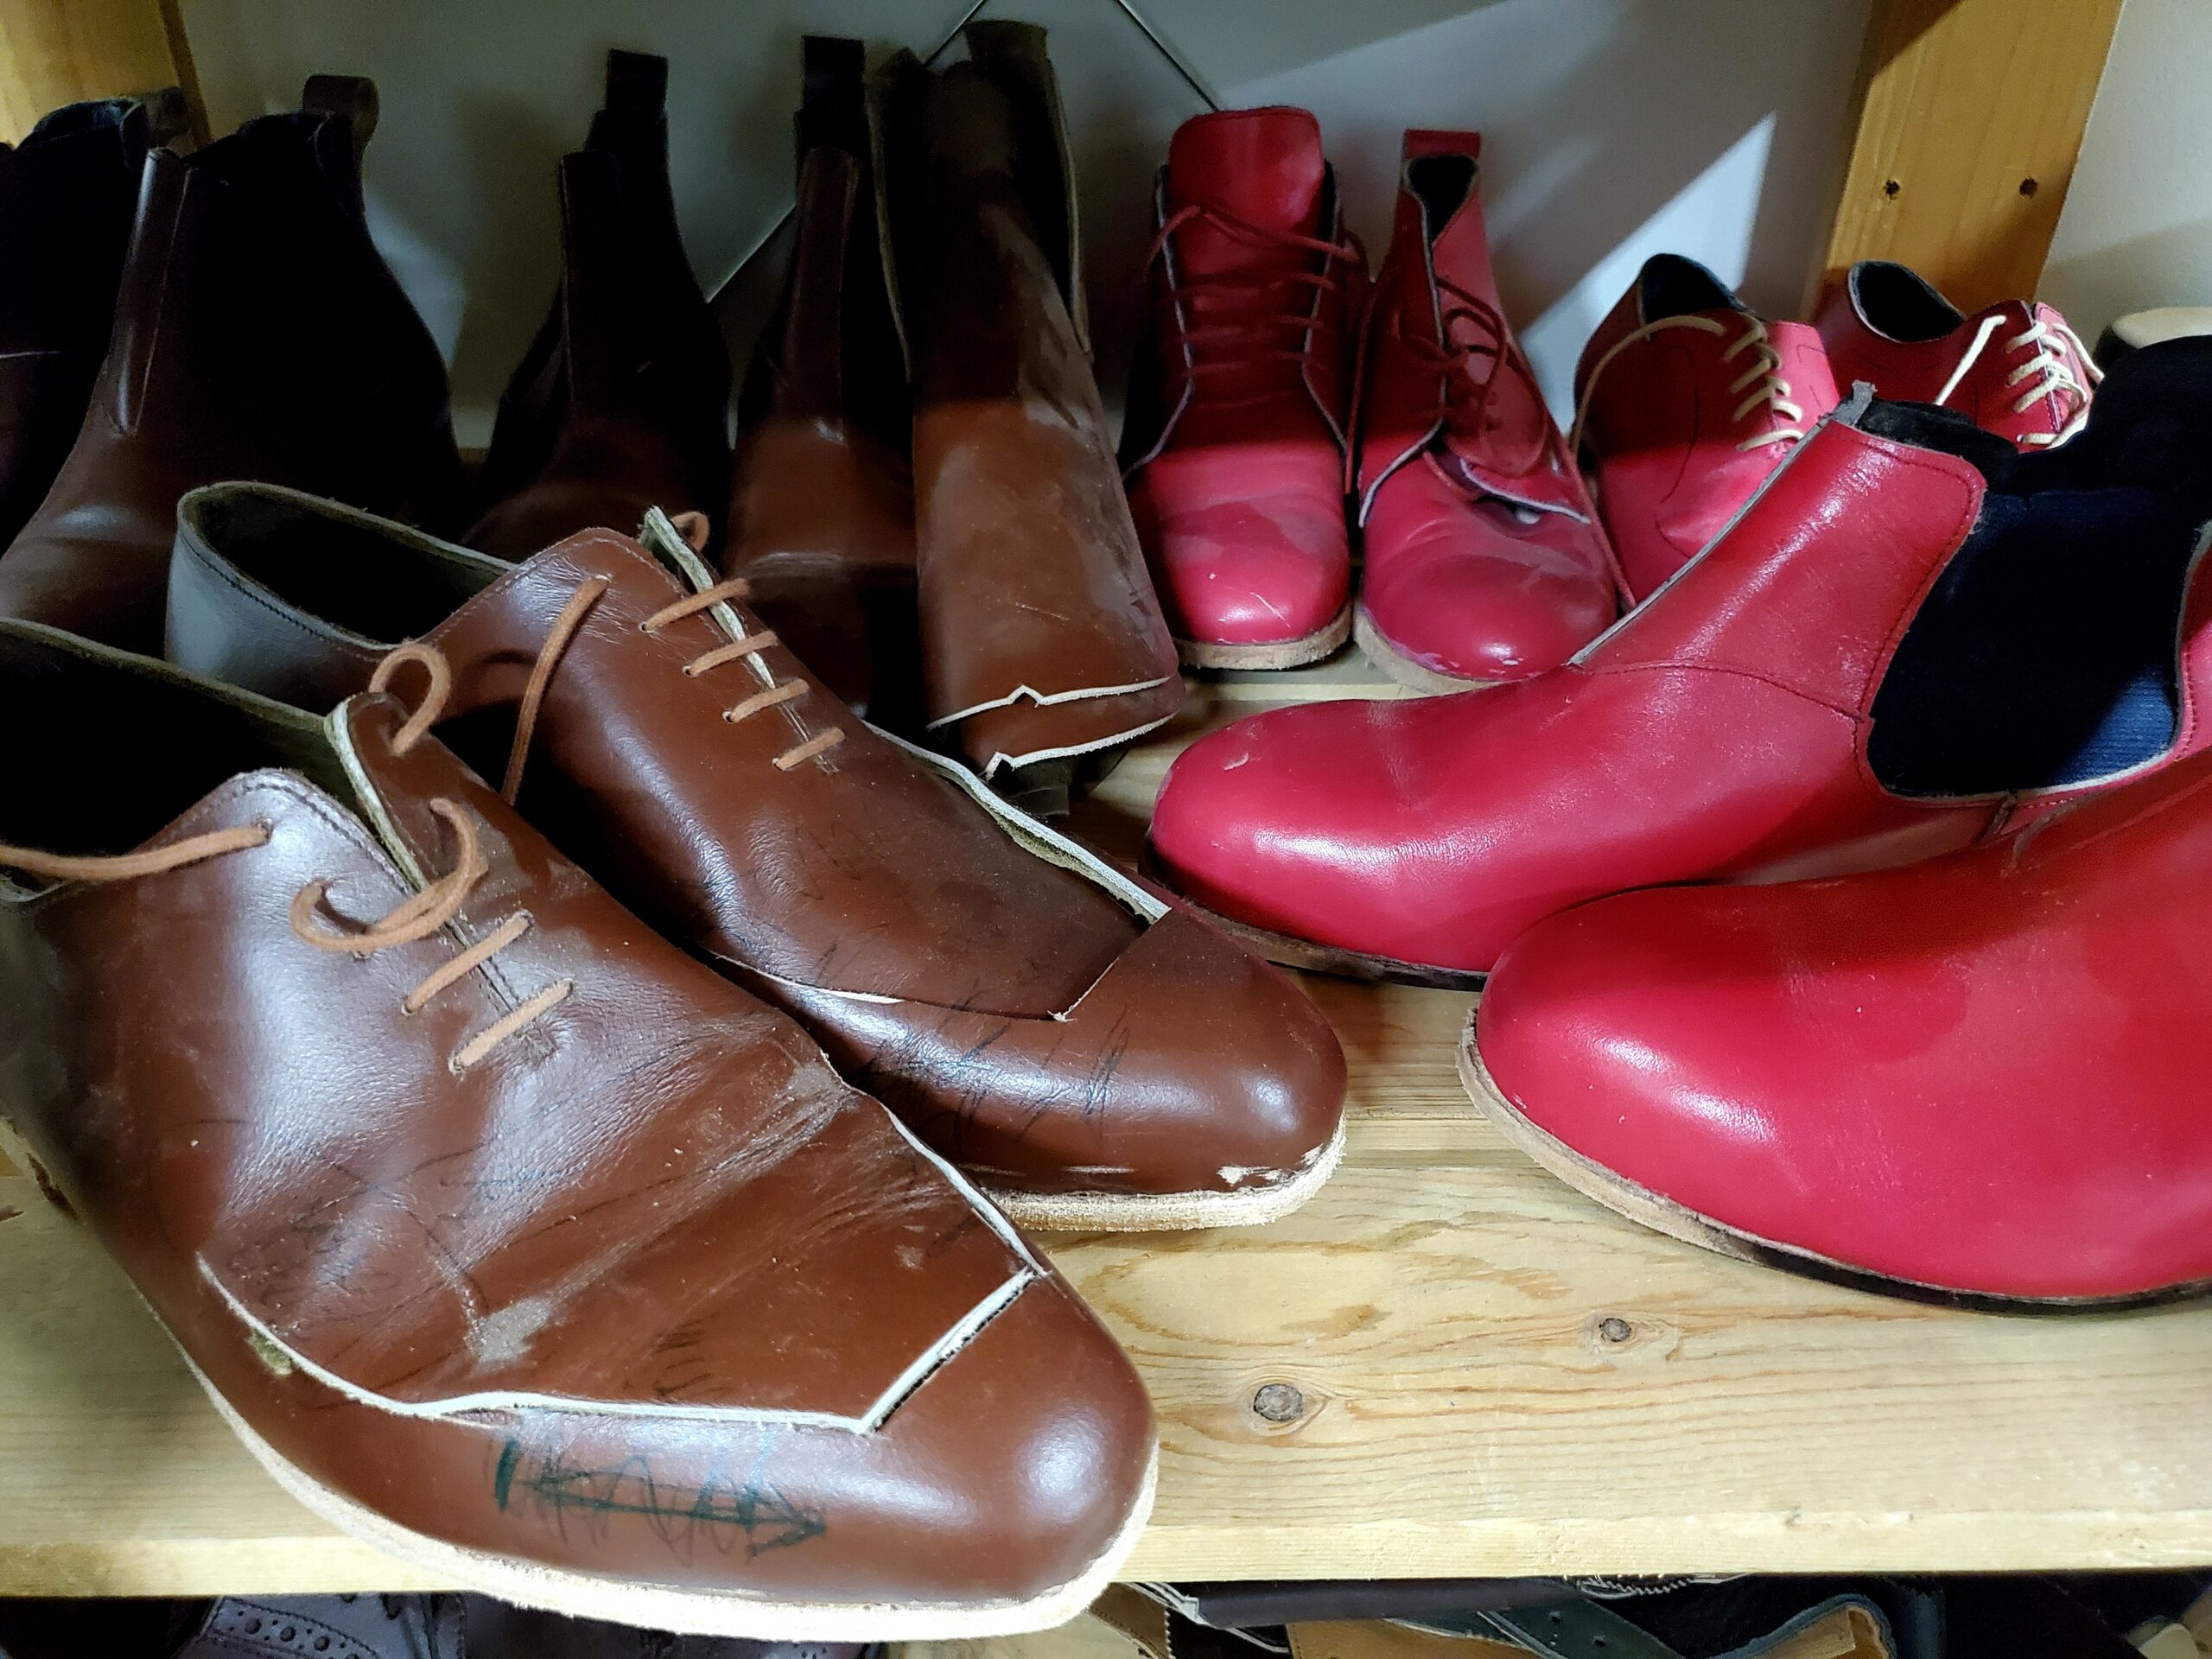 sample shoes in pink and brown at a slosky footwear